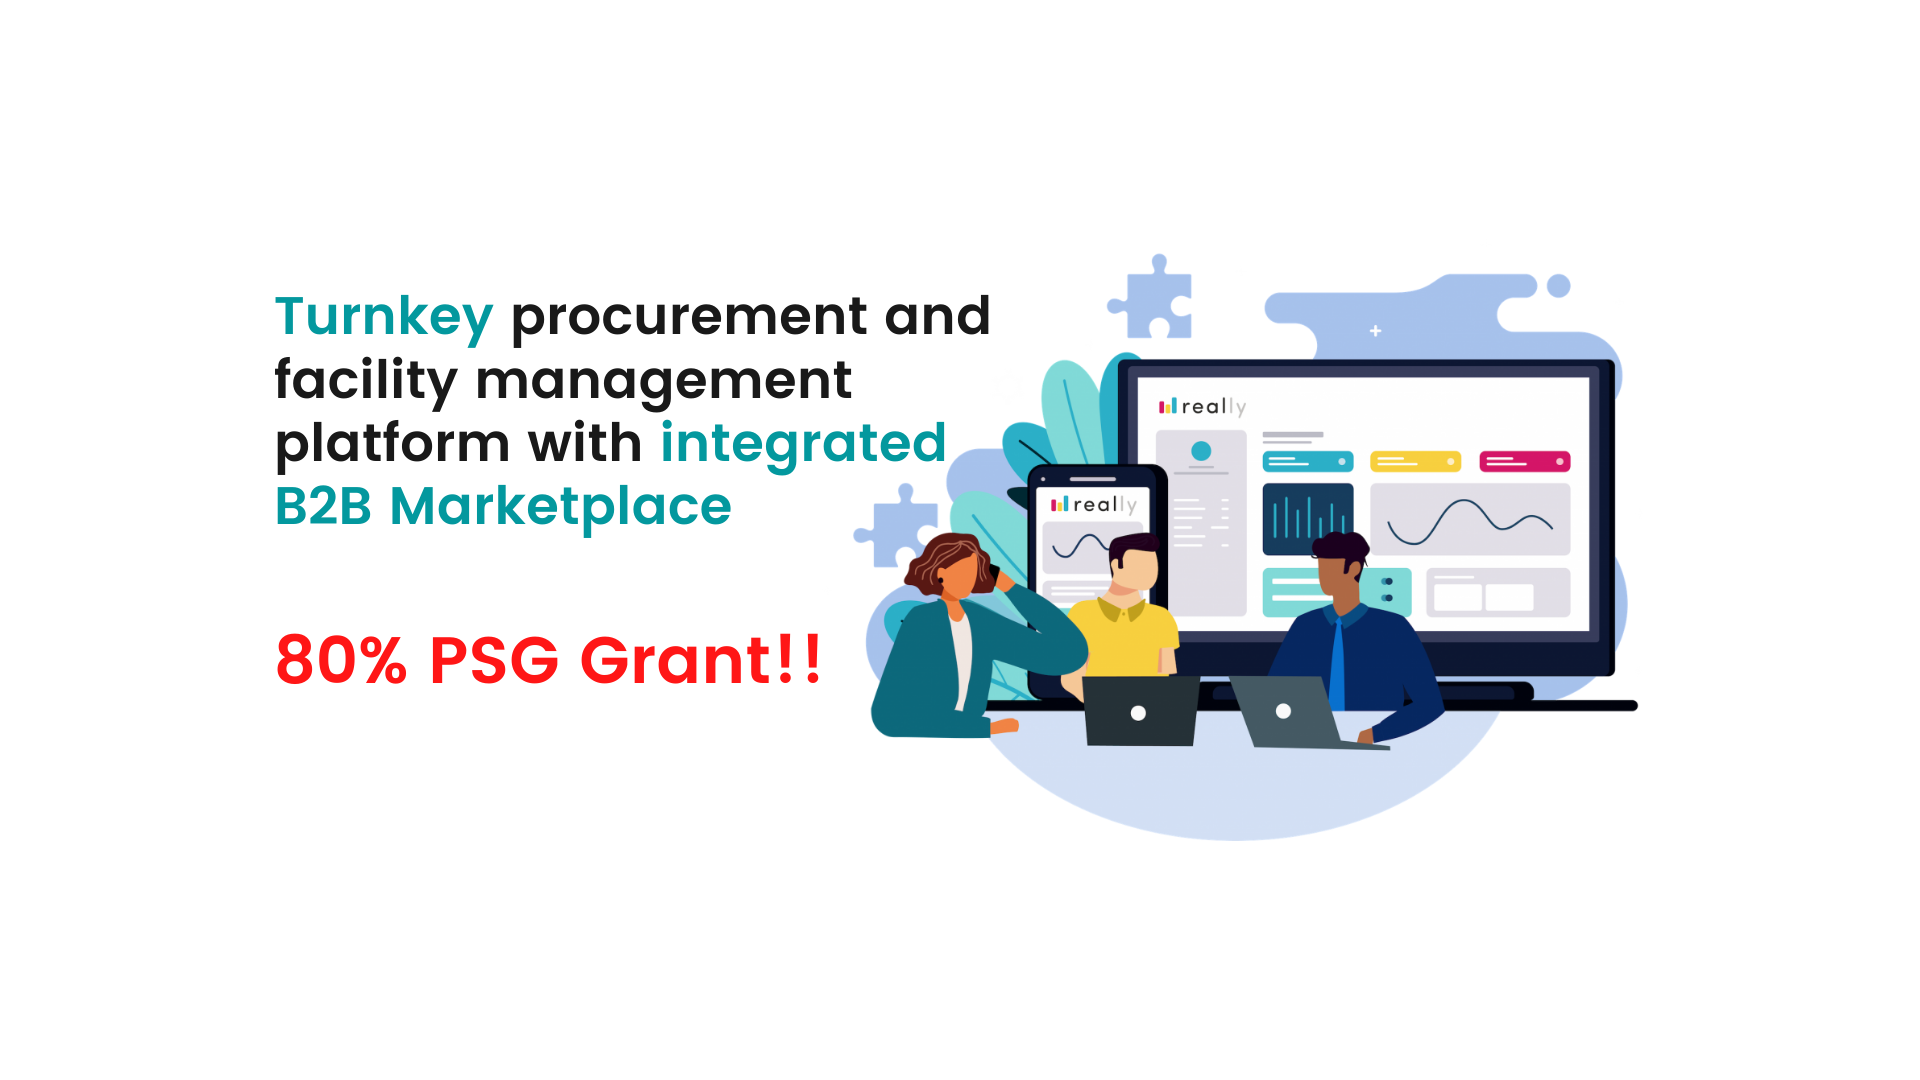 Get up to 80% subsidy for Really's cloud-based solution through IMDA's Productivity Solutions Grant (PSG)